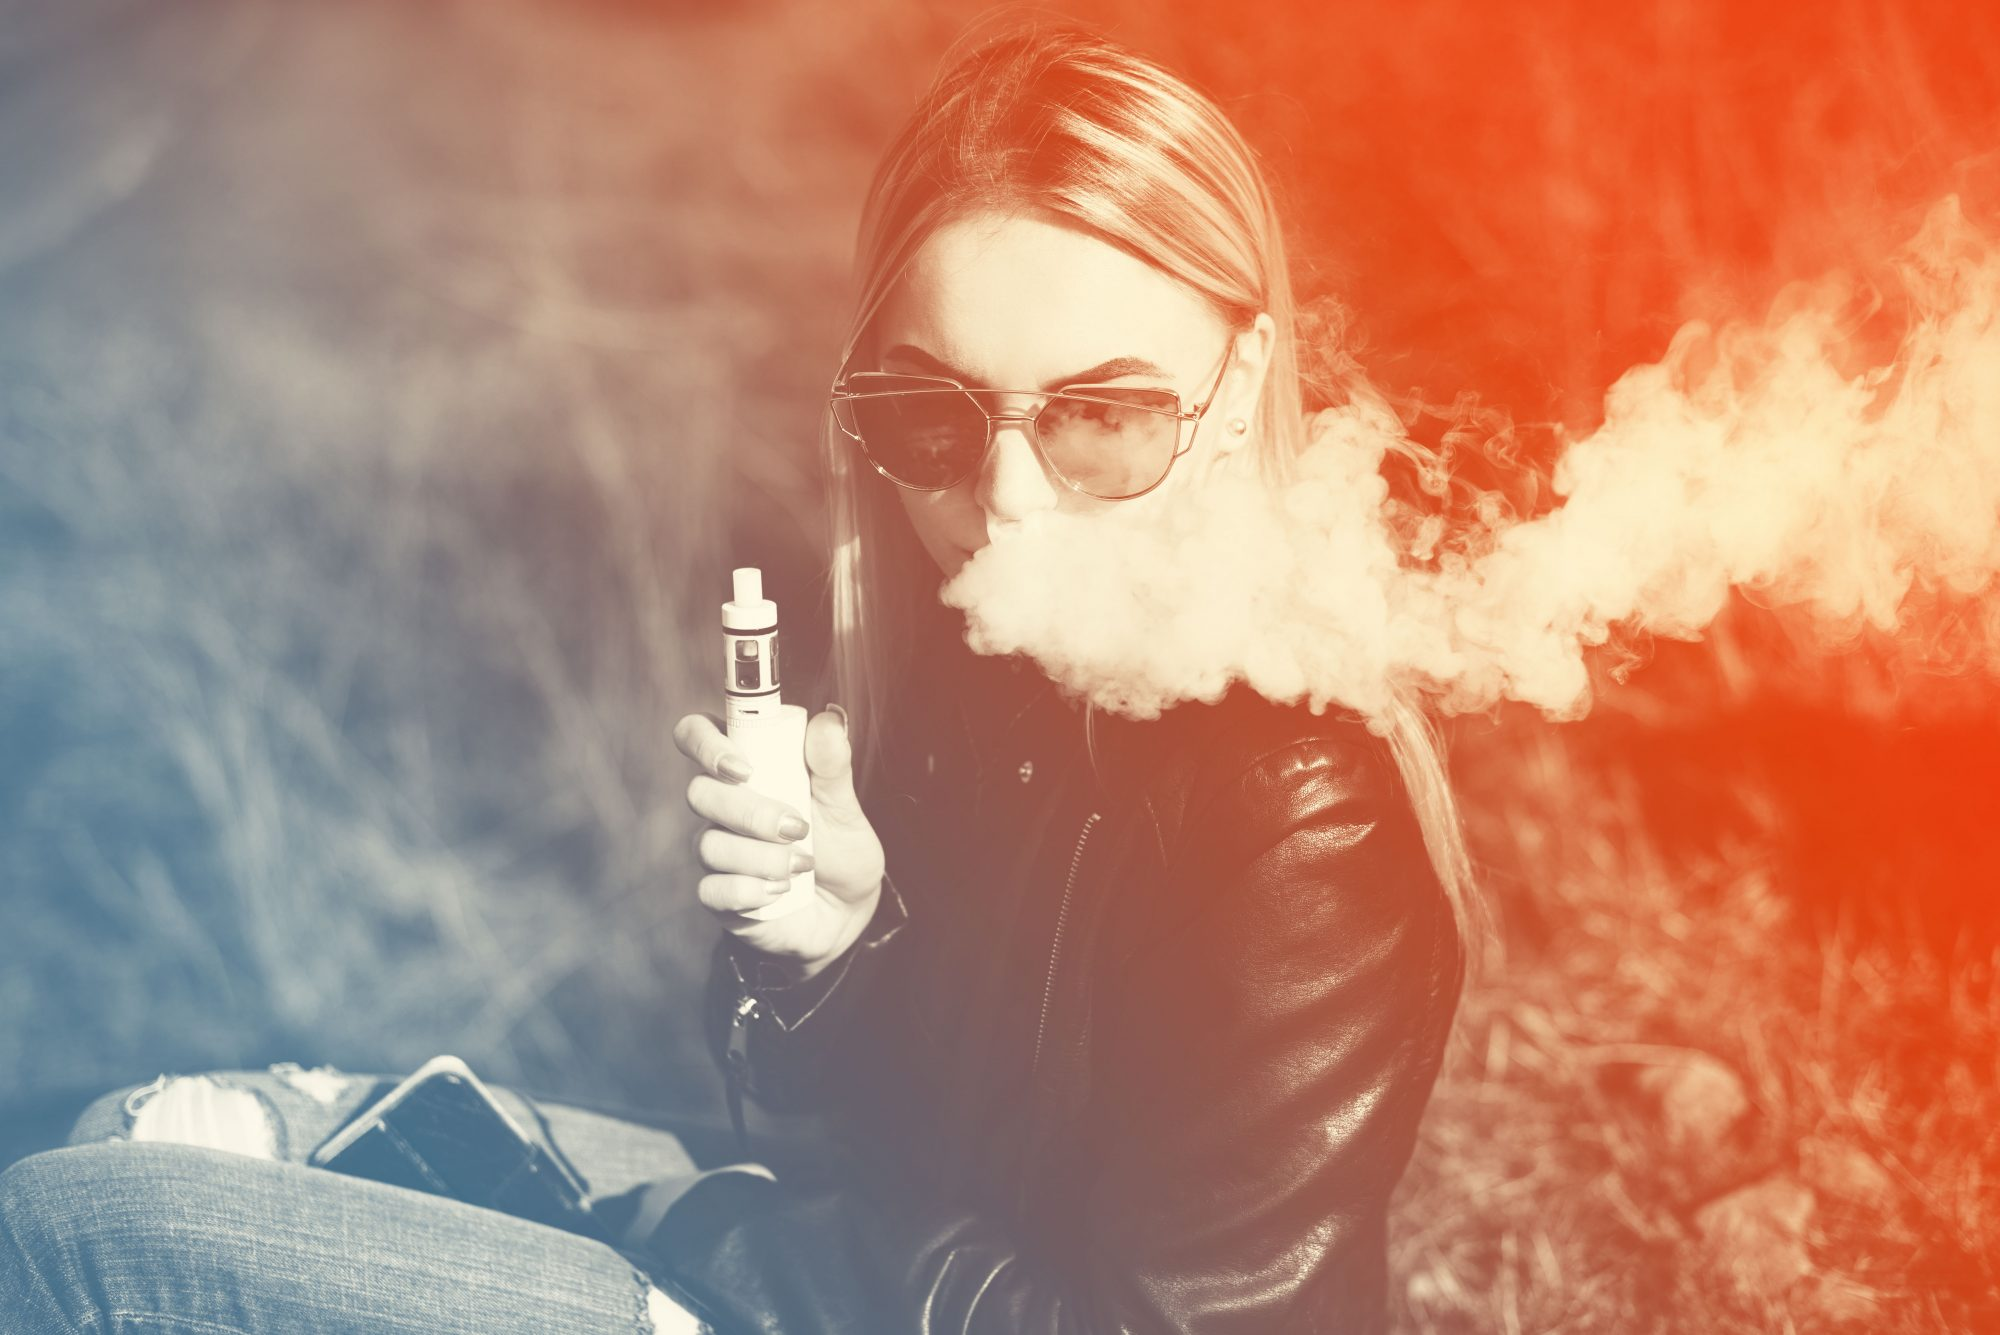 How Can You Get Chemical Pneumonia From Vaping? Pulmonologists Explain